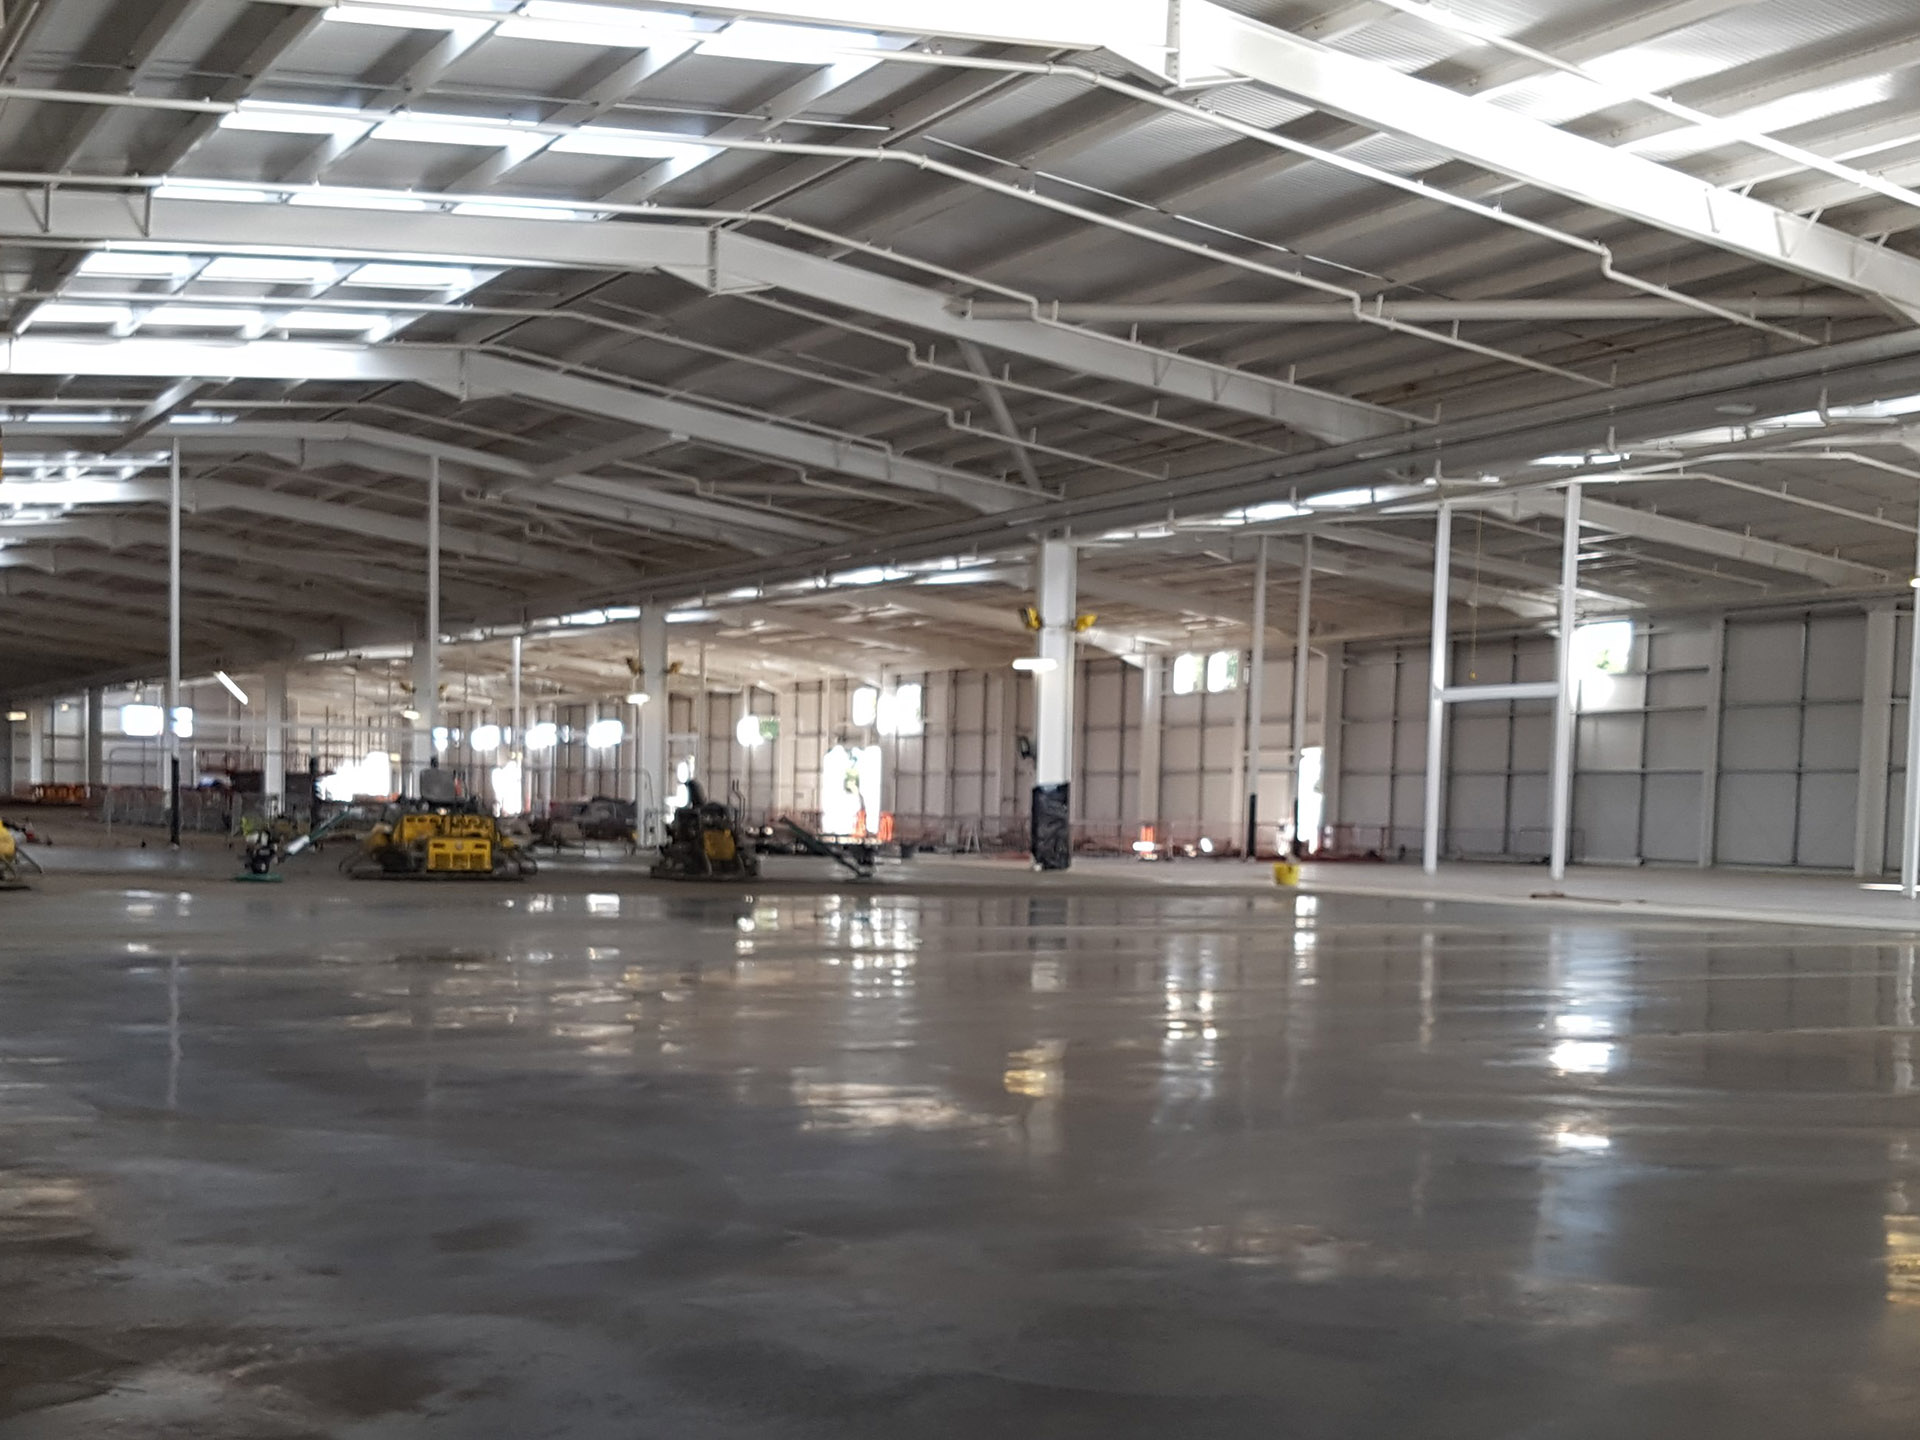 contractors laying concrete floor in a warehouse